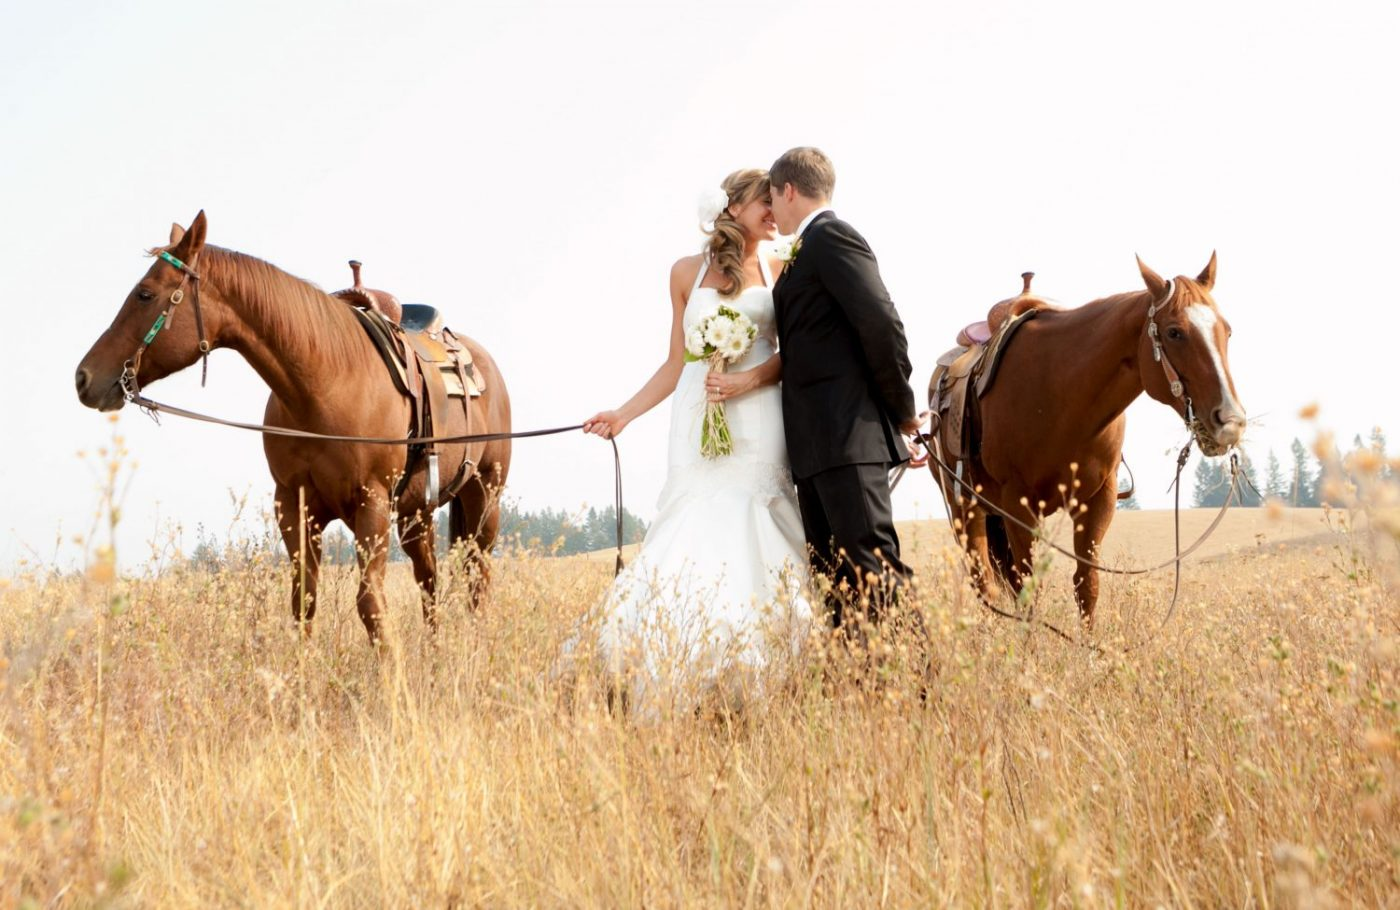 bride-groom-with-horses-in-grassy-field-spokane-rustic-wedding